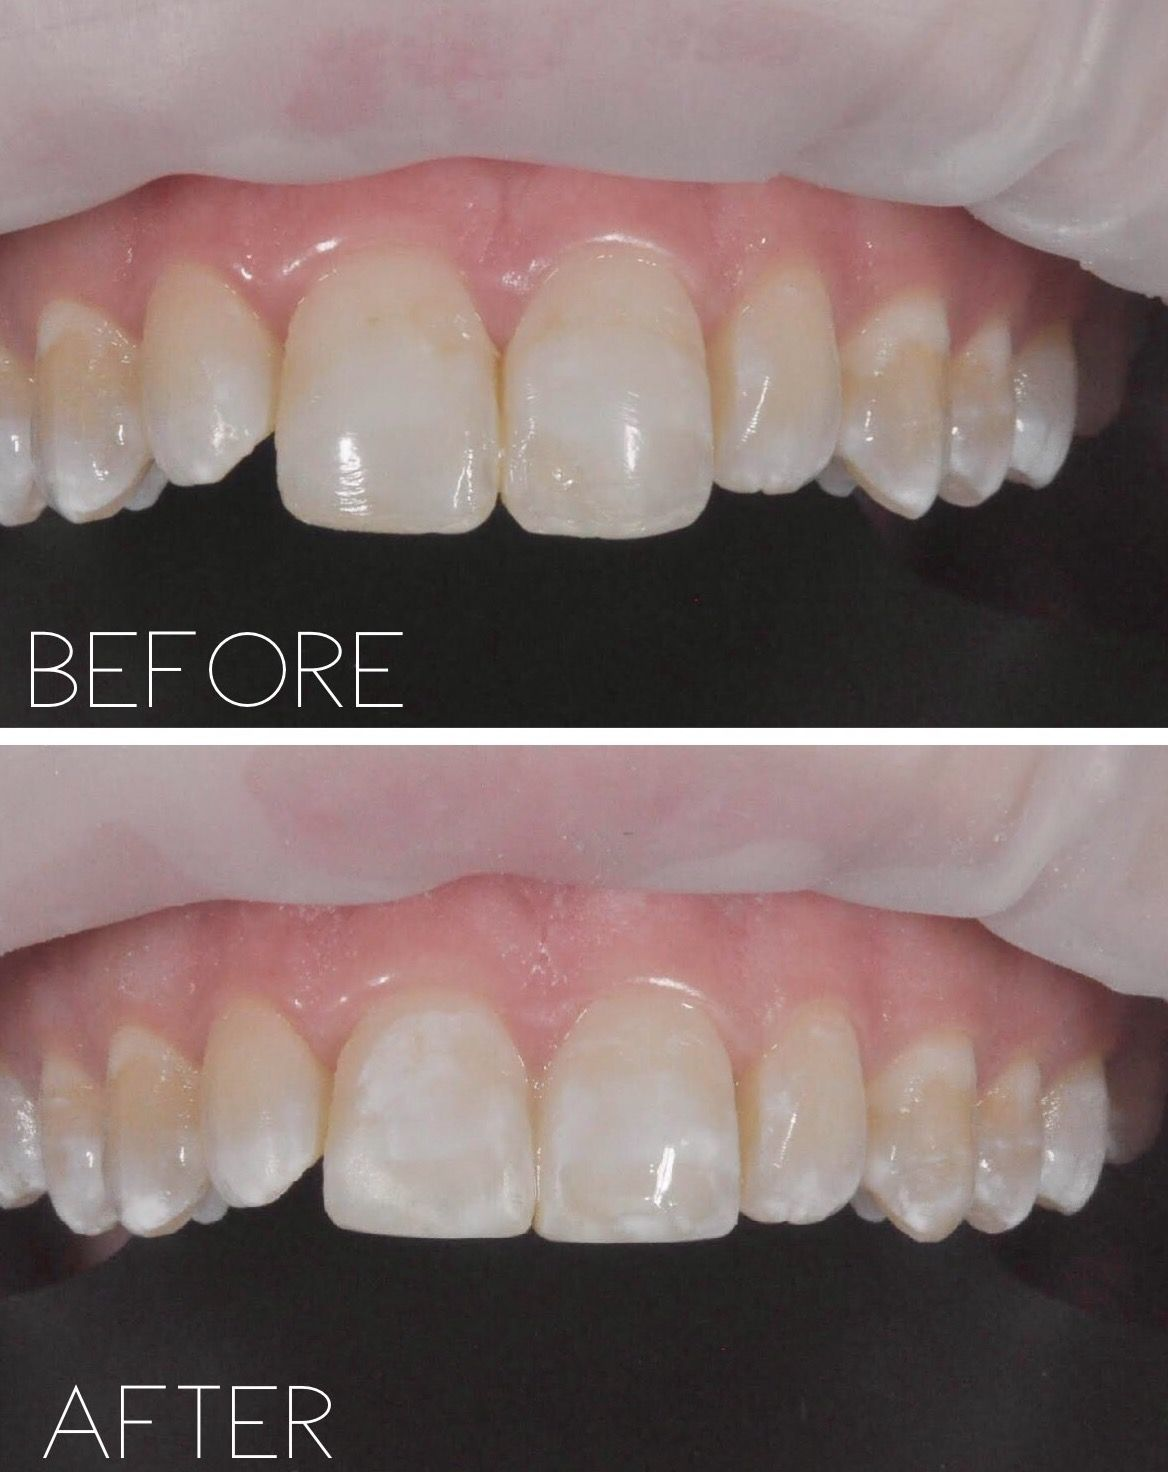 Our Patient In This Before And After Had Odontoplasty Selective Level Out Upper Front Teeth Took 5 Mins With A Great Result Front Teeth Teeth